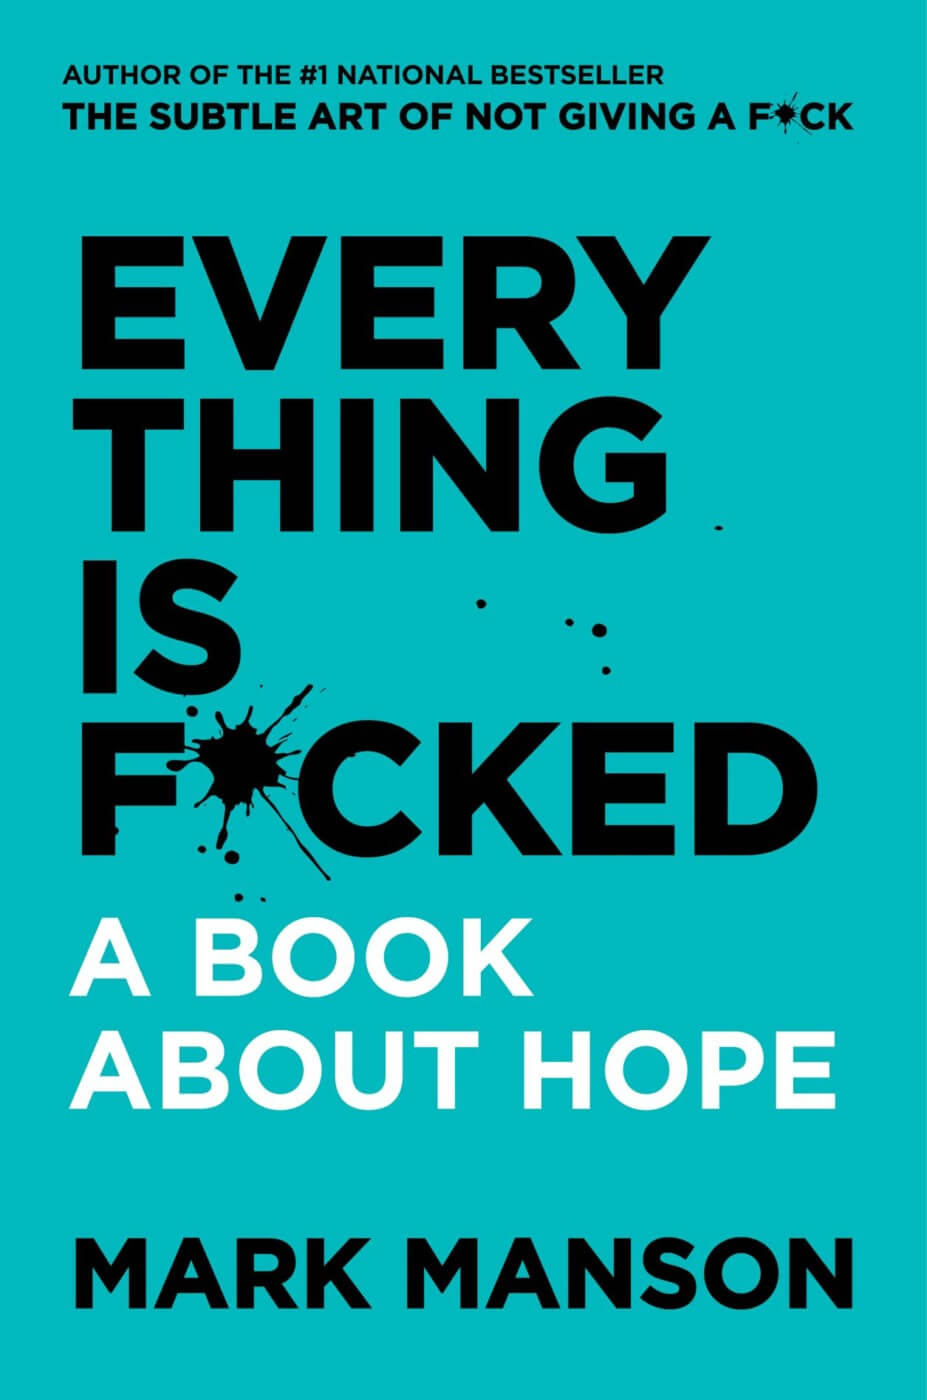 everything-is-f*cked-mark-manson-book-cover.jpeg